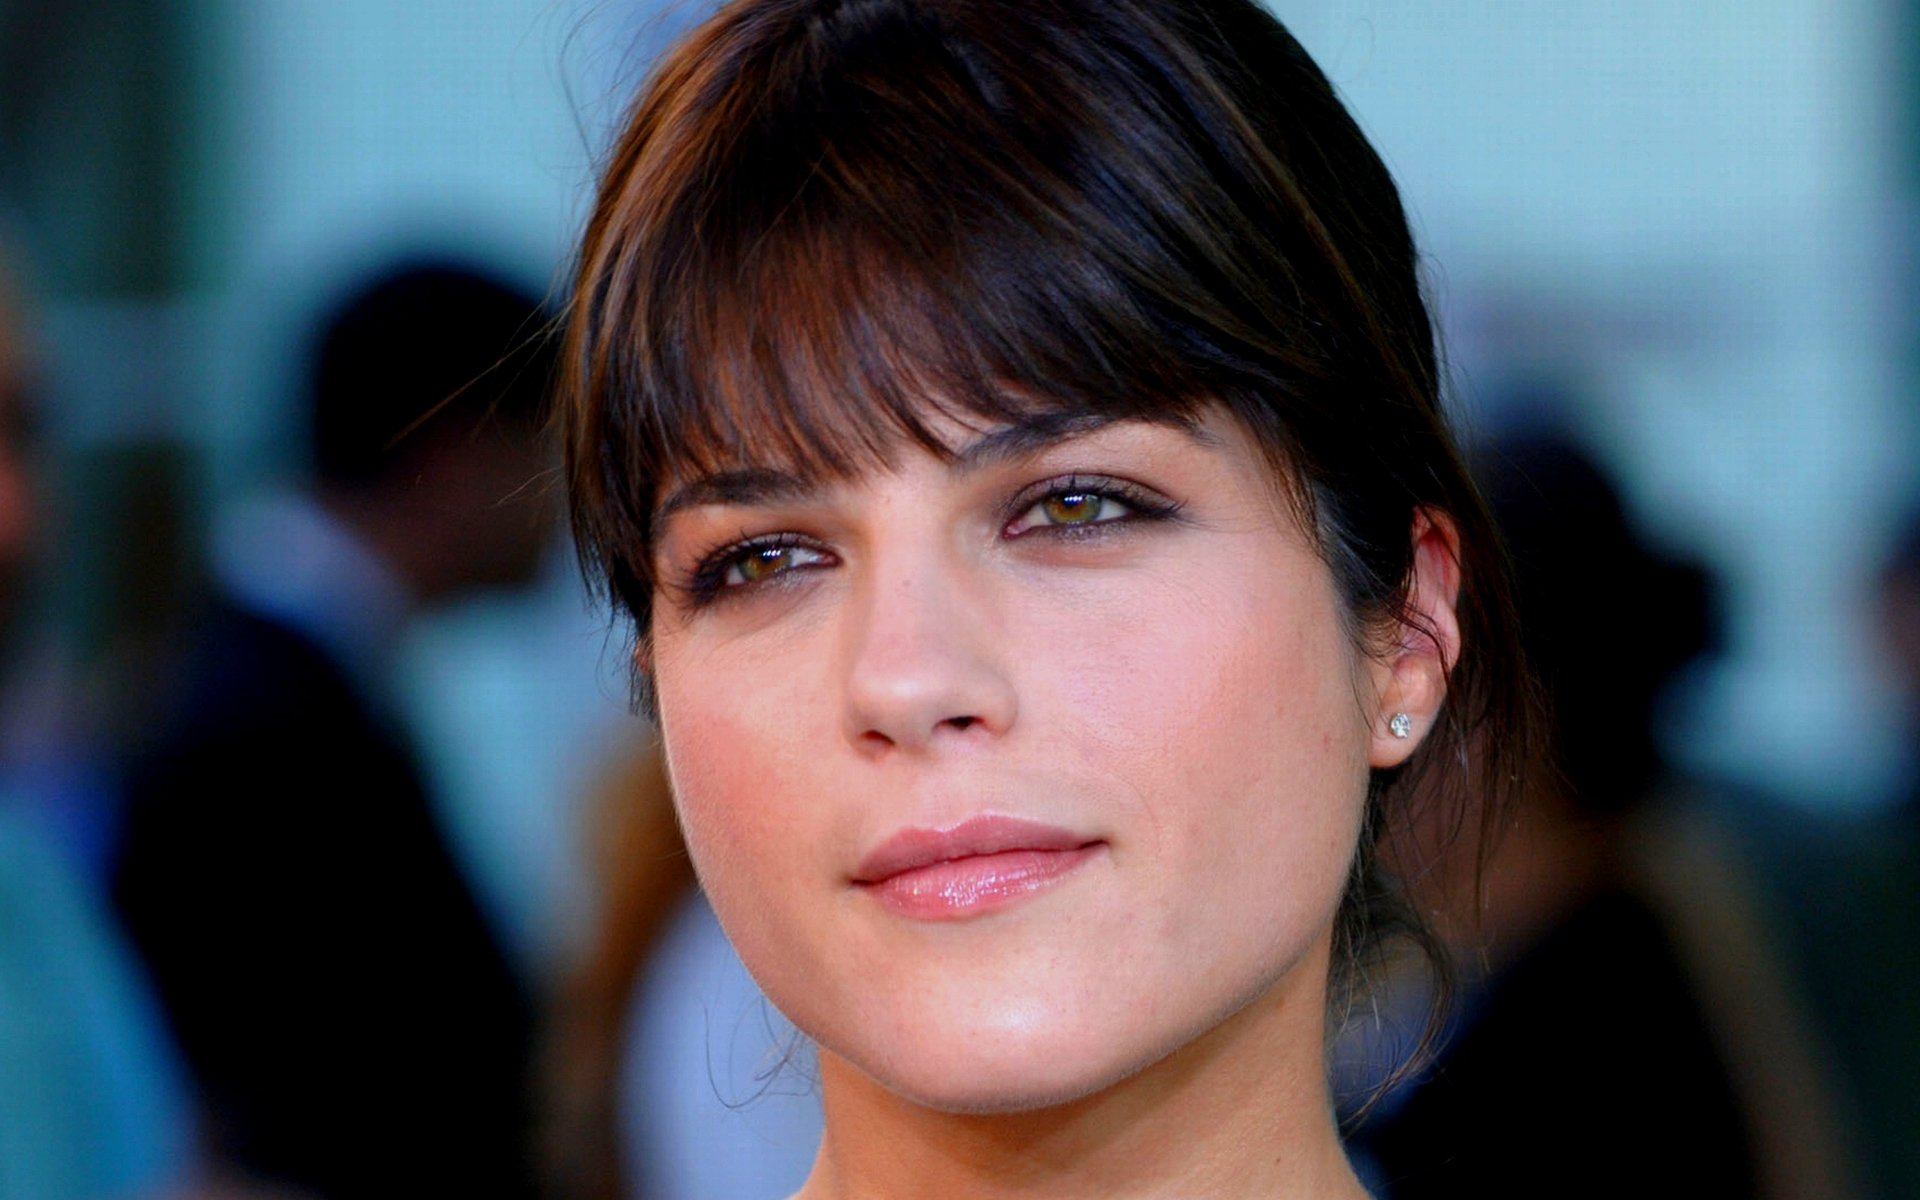 selma blair face wallpaper 56746